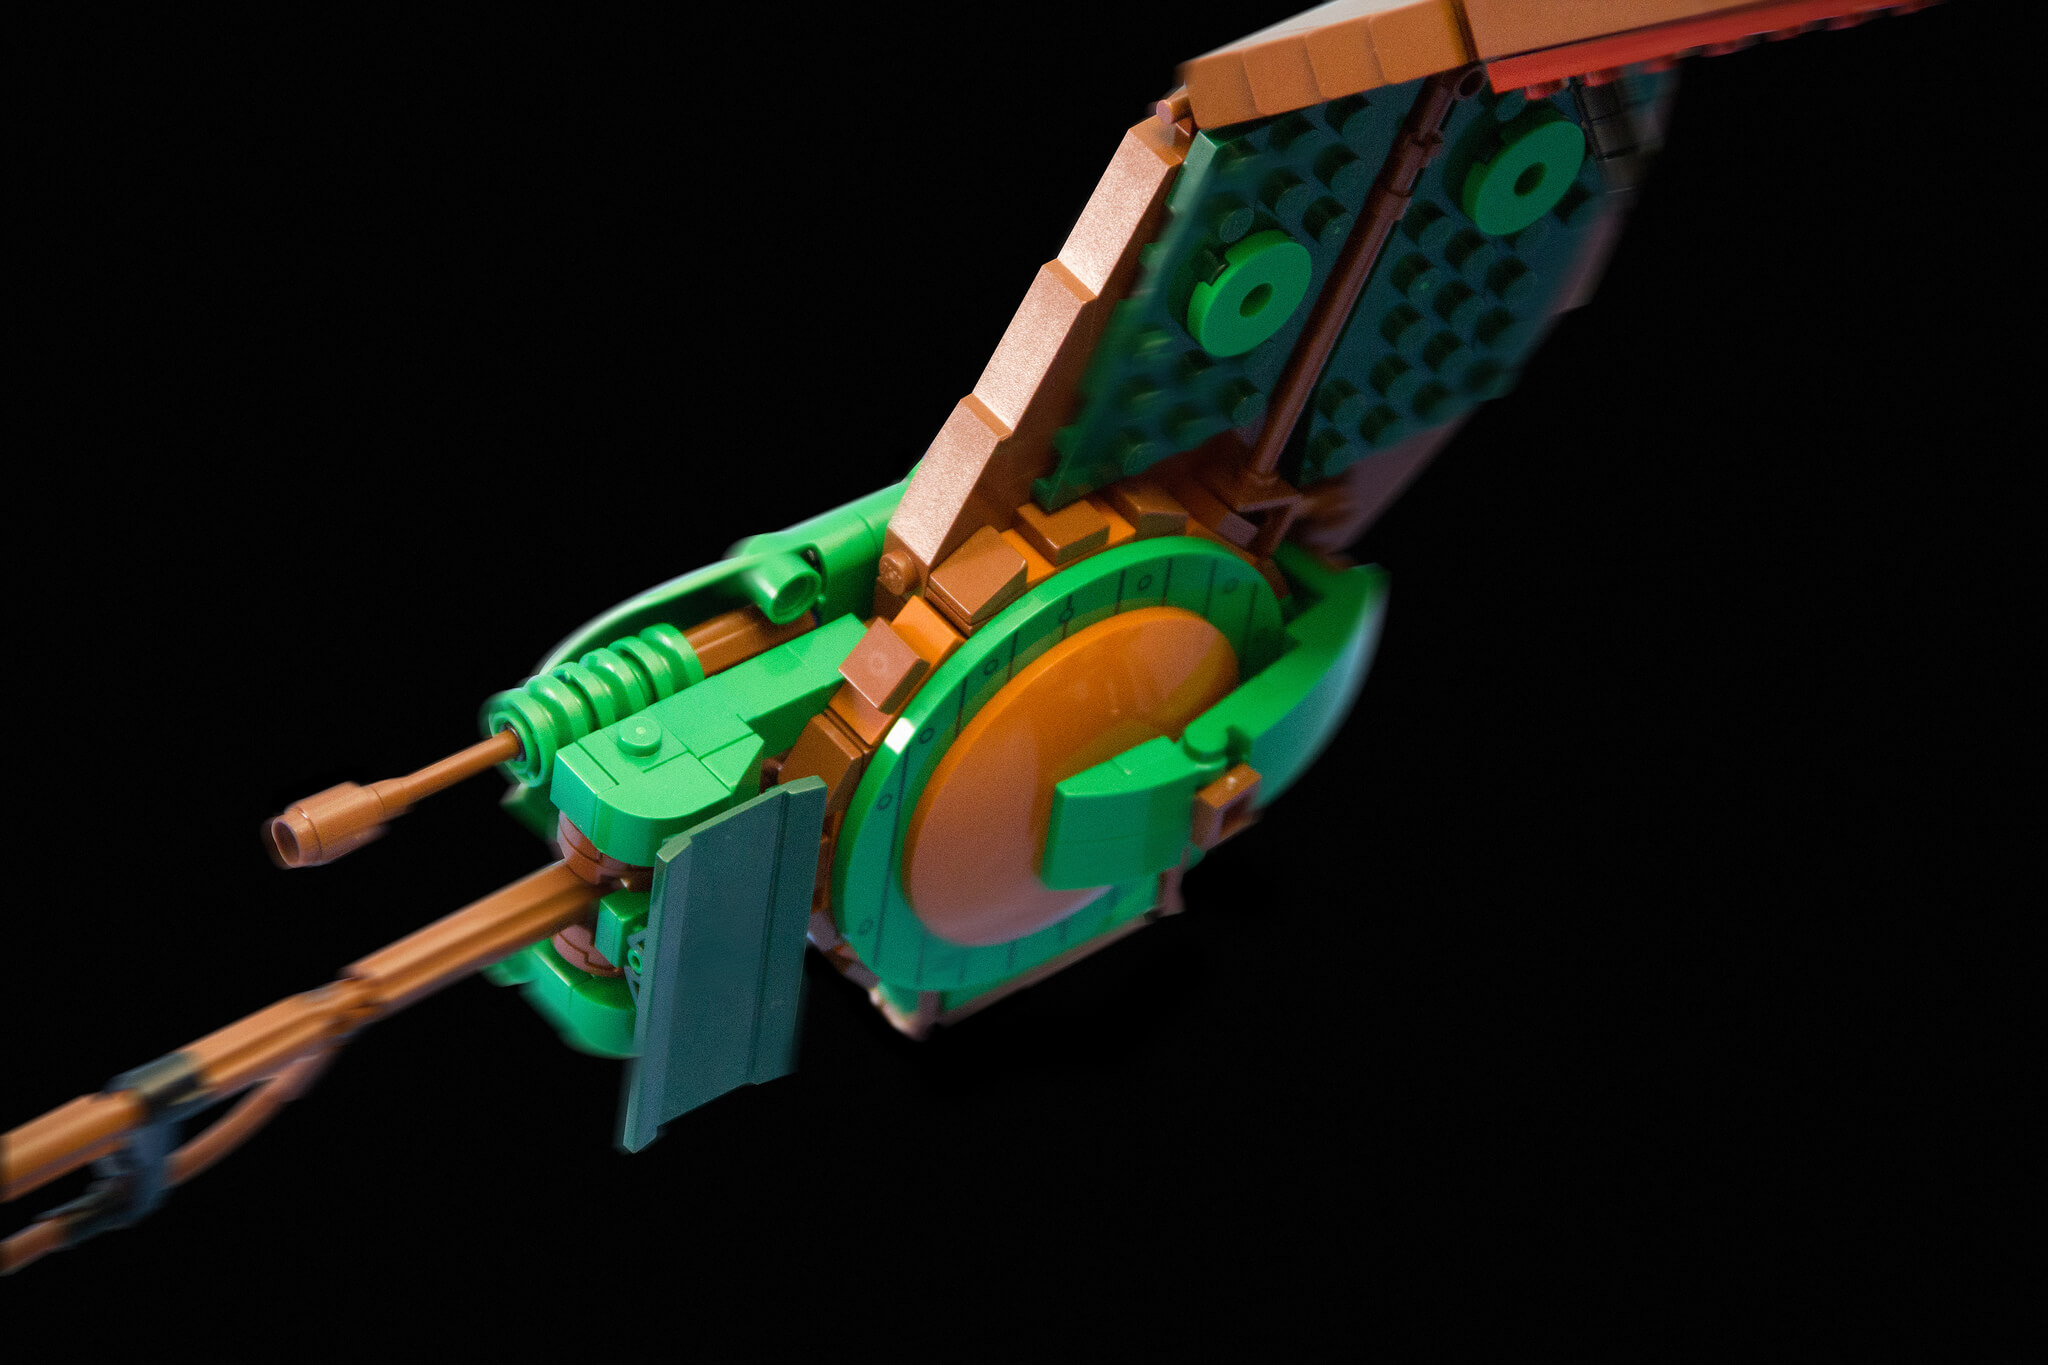 lego star trek bird of prey 4 (1)